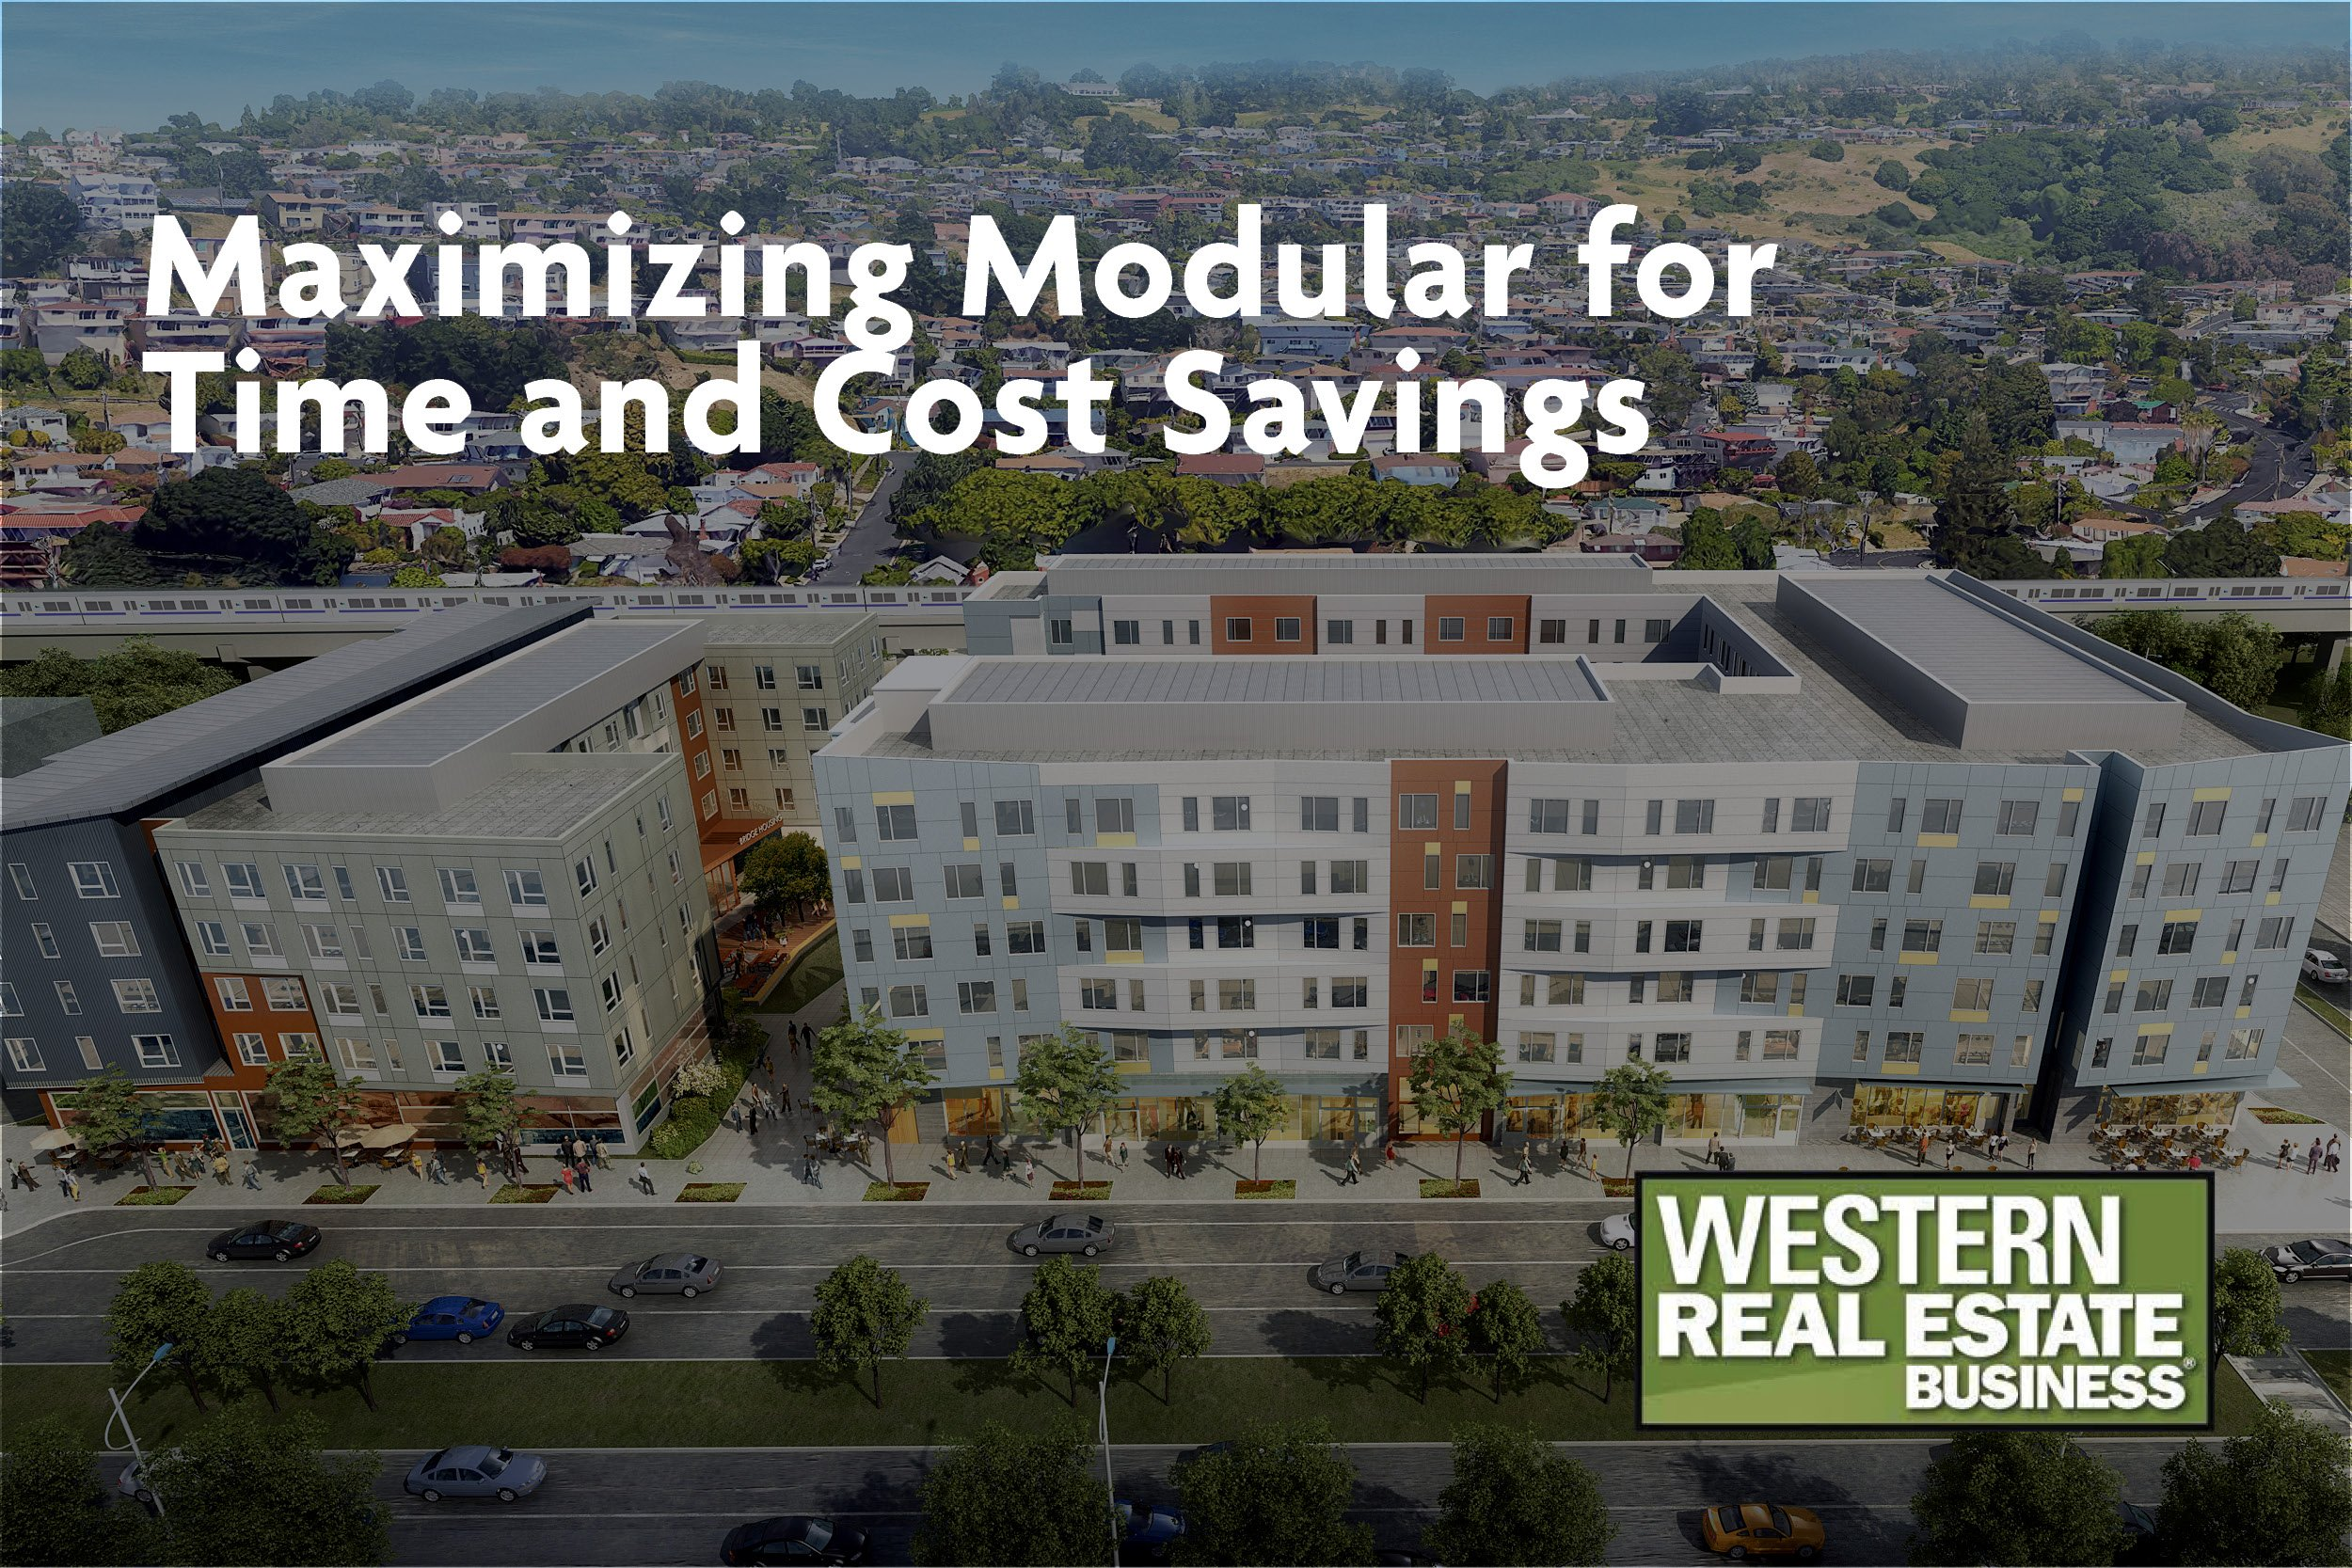 In the News: Western Real Estate Business – Maximizing Modular Fabrication-May 6, 2021-Lowney Architecture